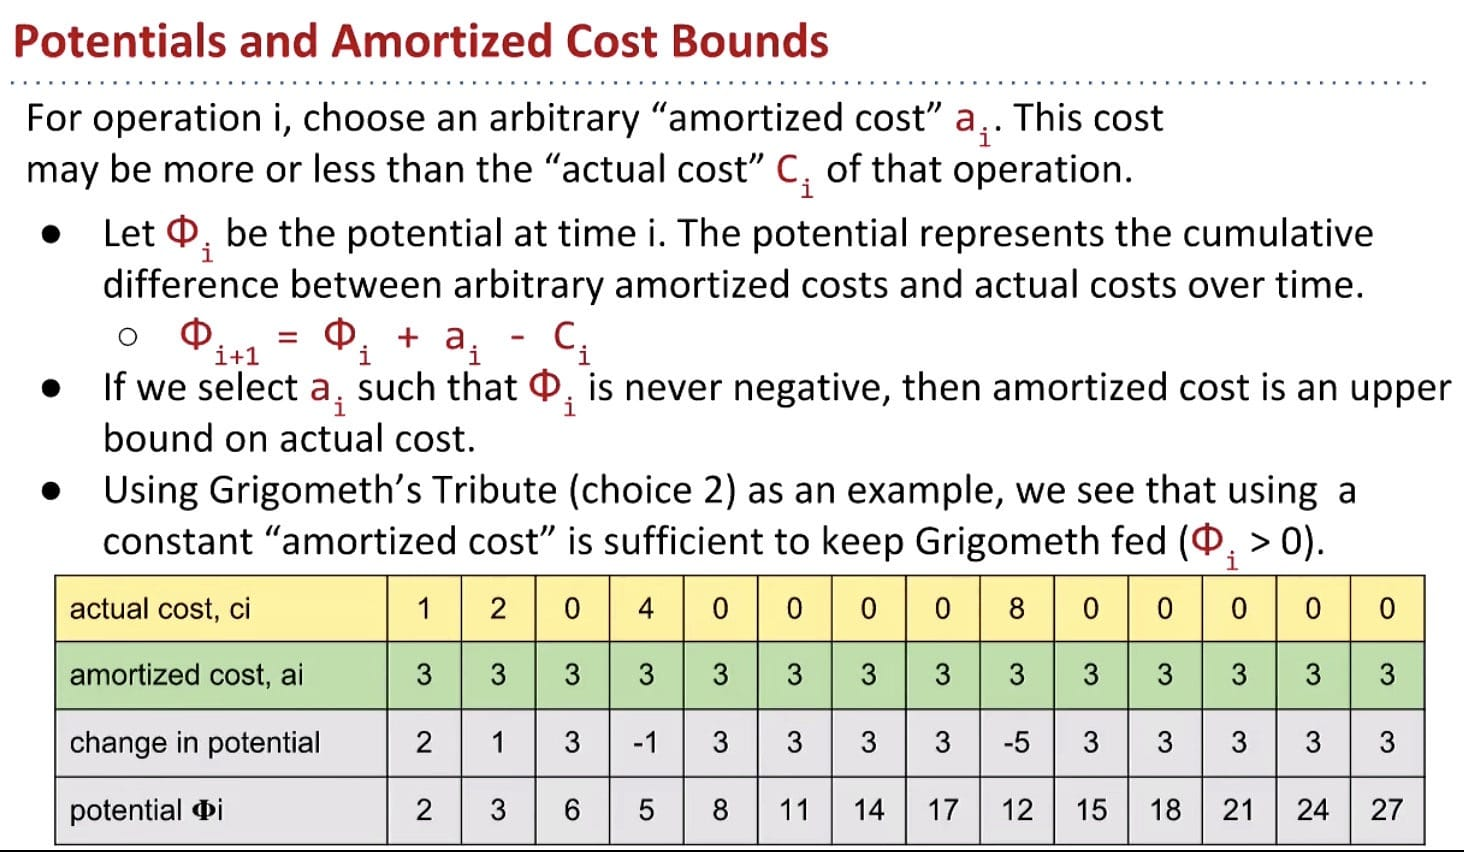 Potentials and Amortized Cost Bounds